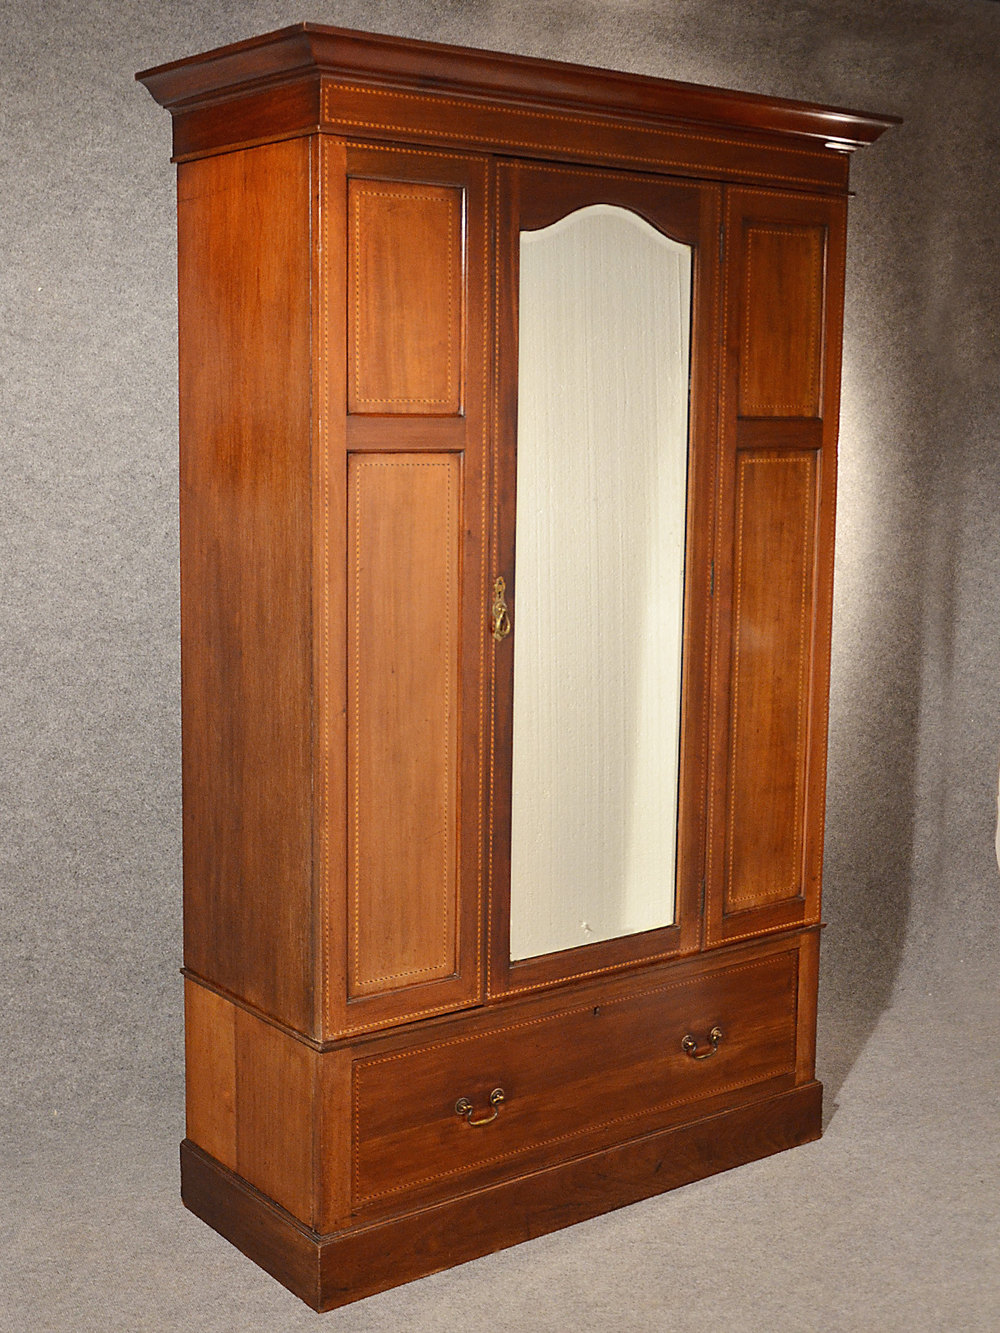 Antique Wardrobe Armoire Mirror Door Maple & Co - Antiques ...